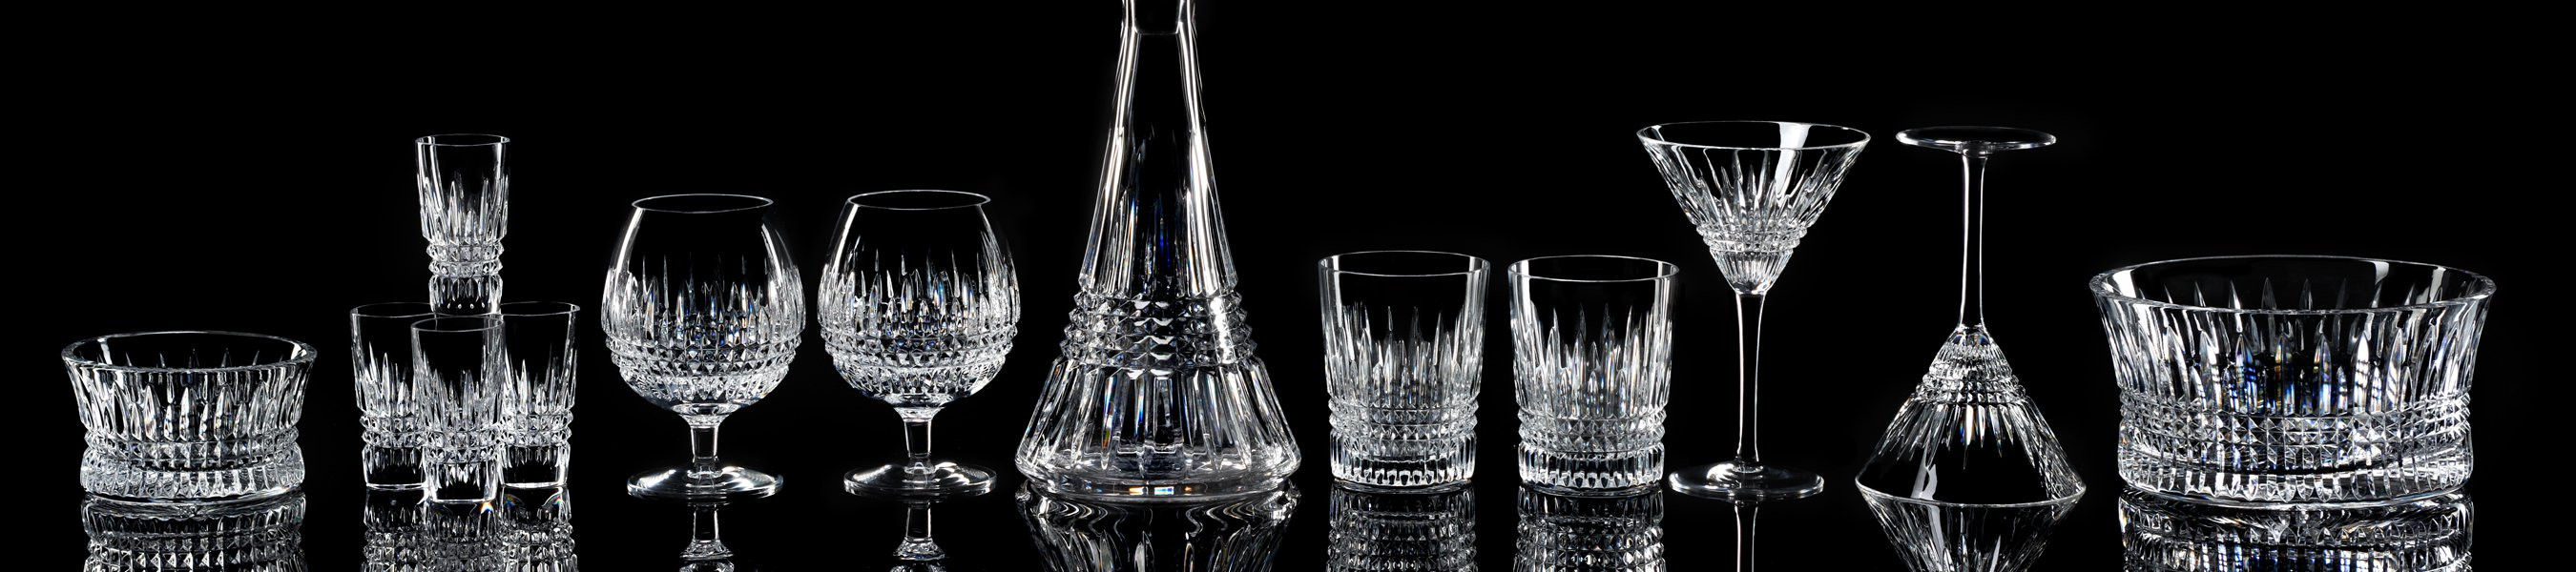 waterford crystal balmoral vase of waterford crystal patterns collections waterforda us for waterford crystal collections